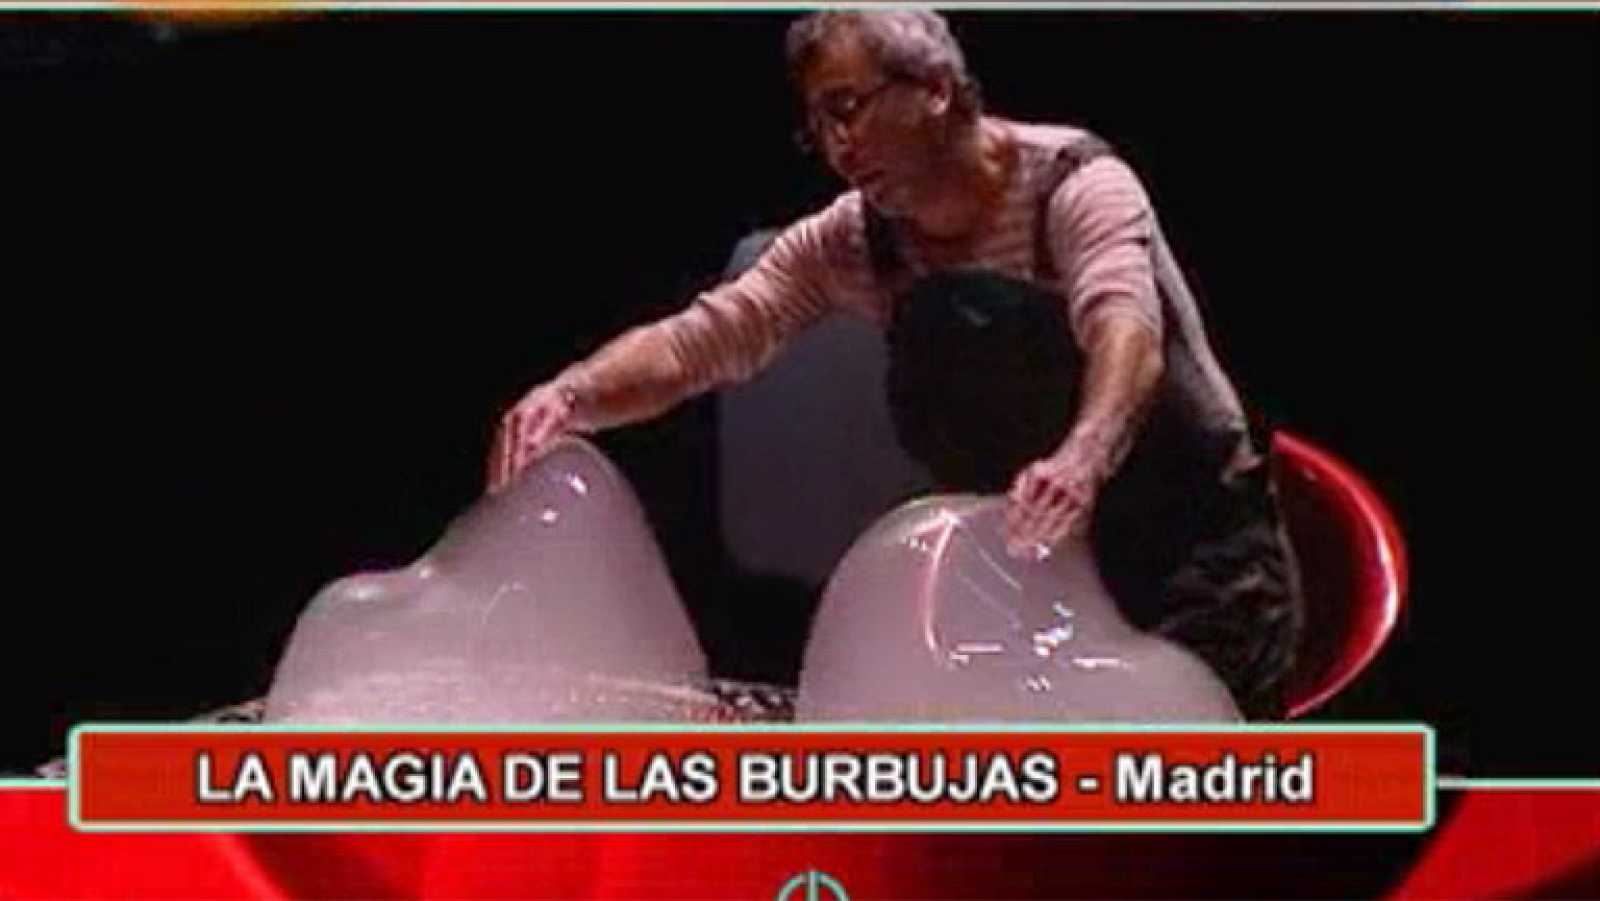 On Off: La magia de las burbujas